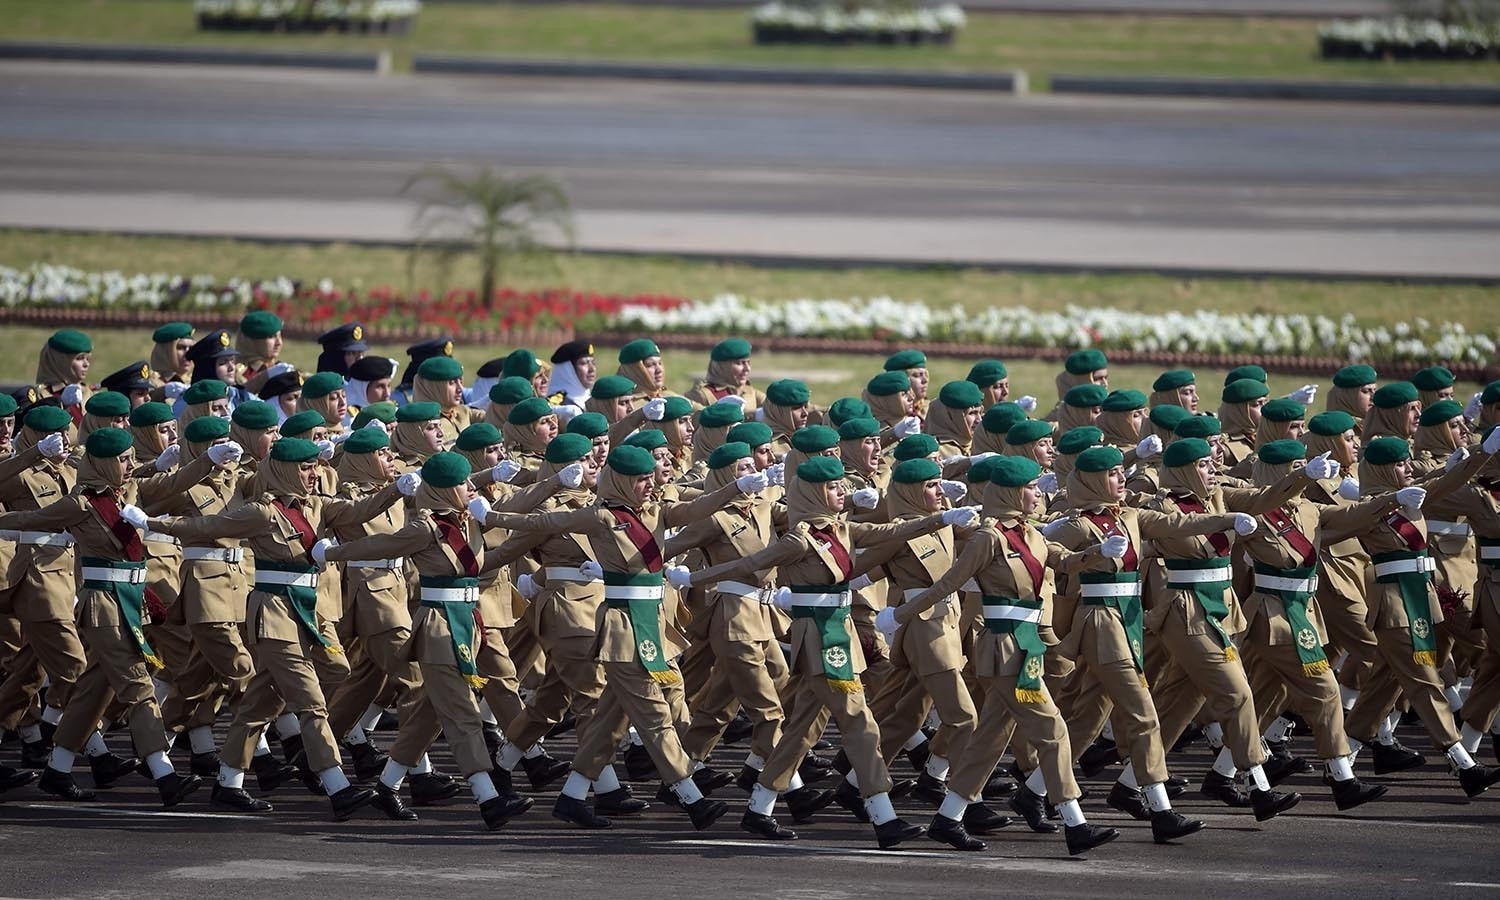 Pakistani women army soldiers march past during a Pakistan Day military parade.─AFP